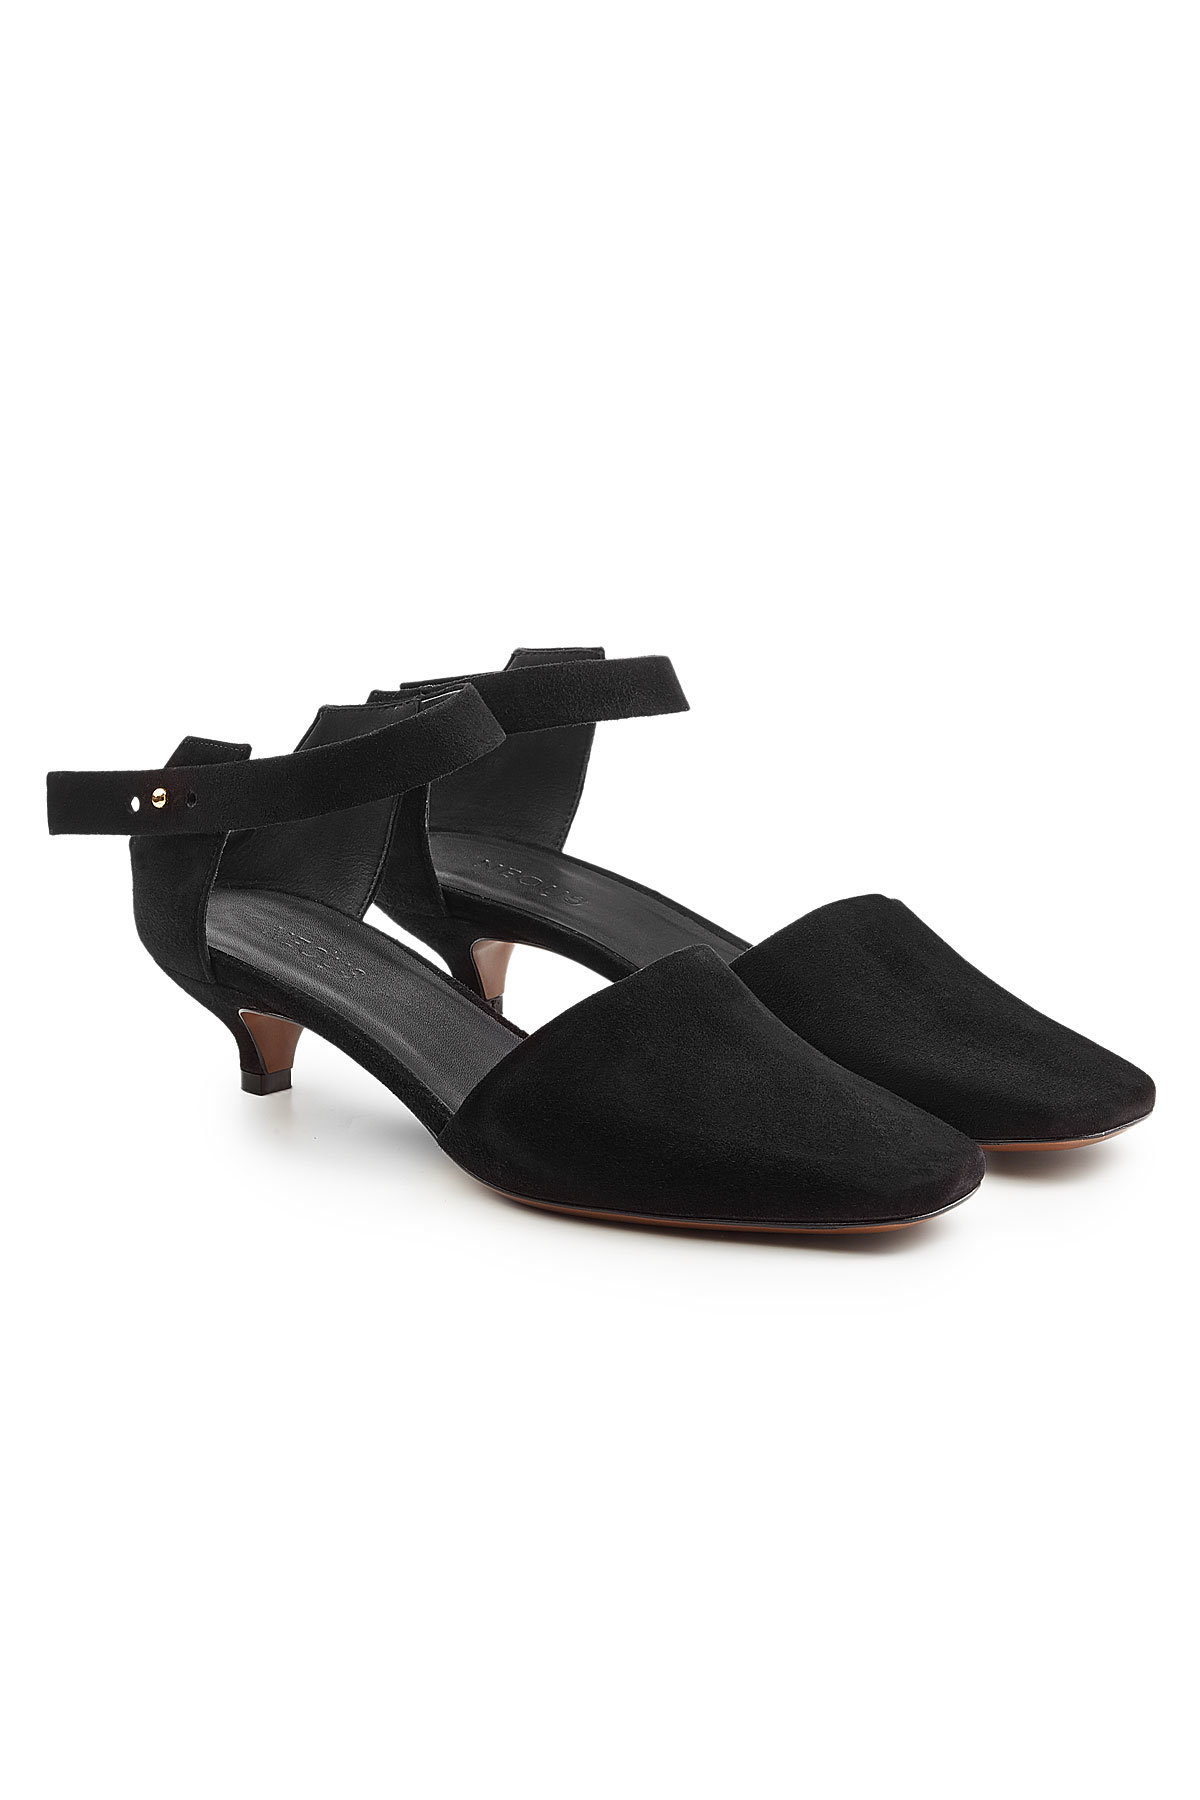 Neous Pleione Leather and Suede Mules Gr. EU 39 CkfKhEX